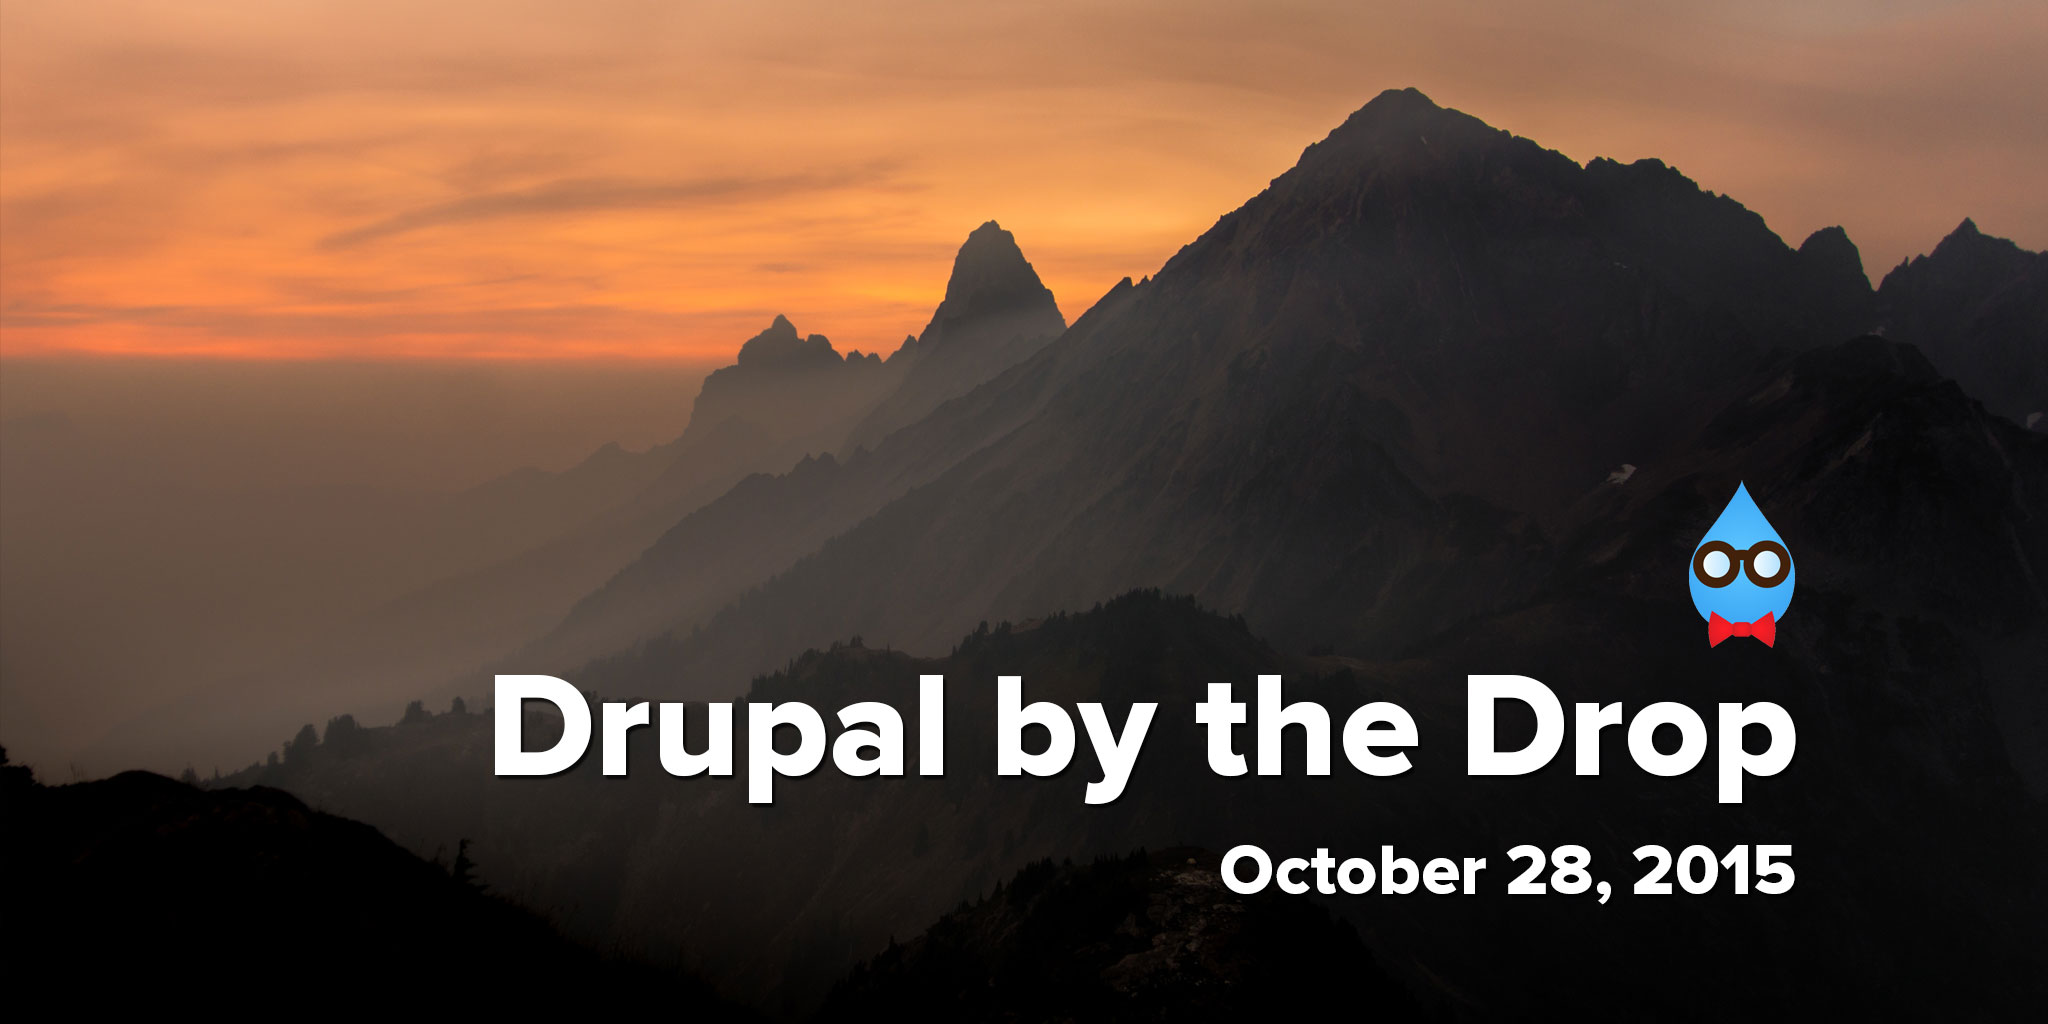 Drupal by the Drop: October 28, 2015